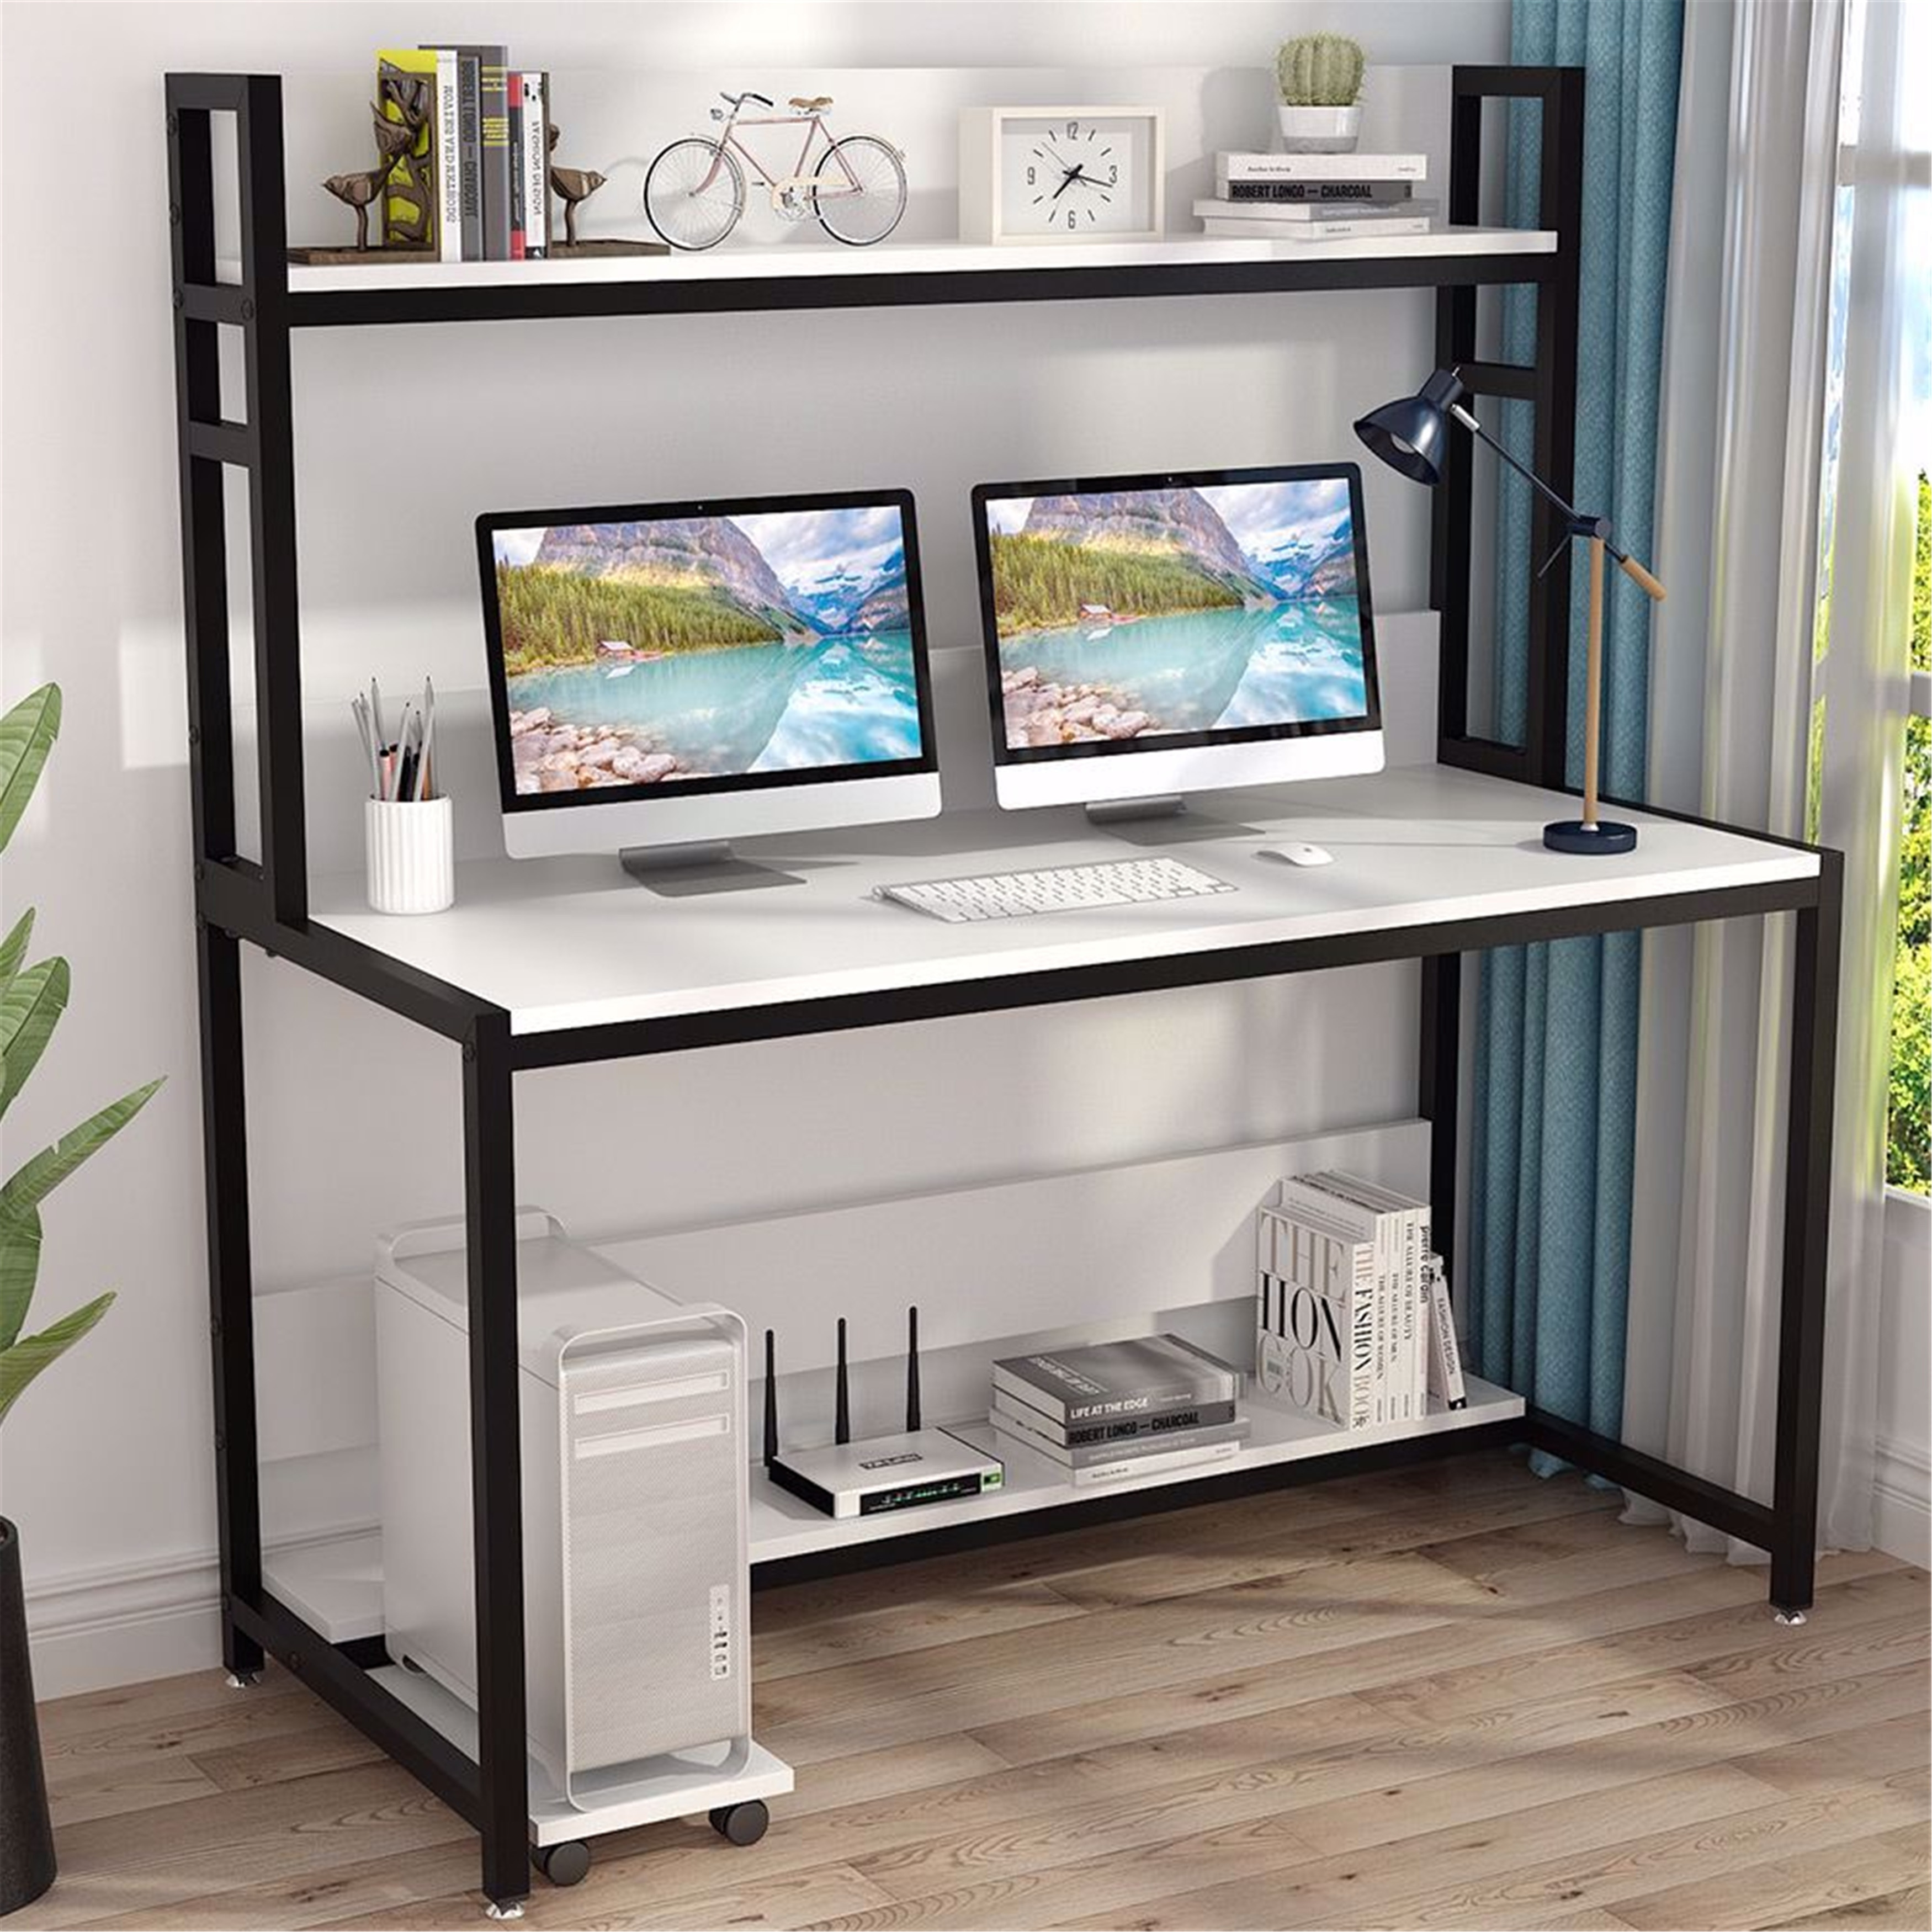 44 Inches Large Computer Desk with Hutch